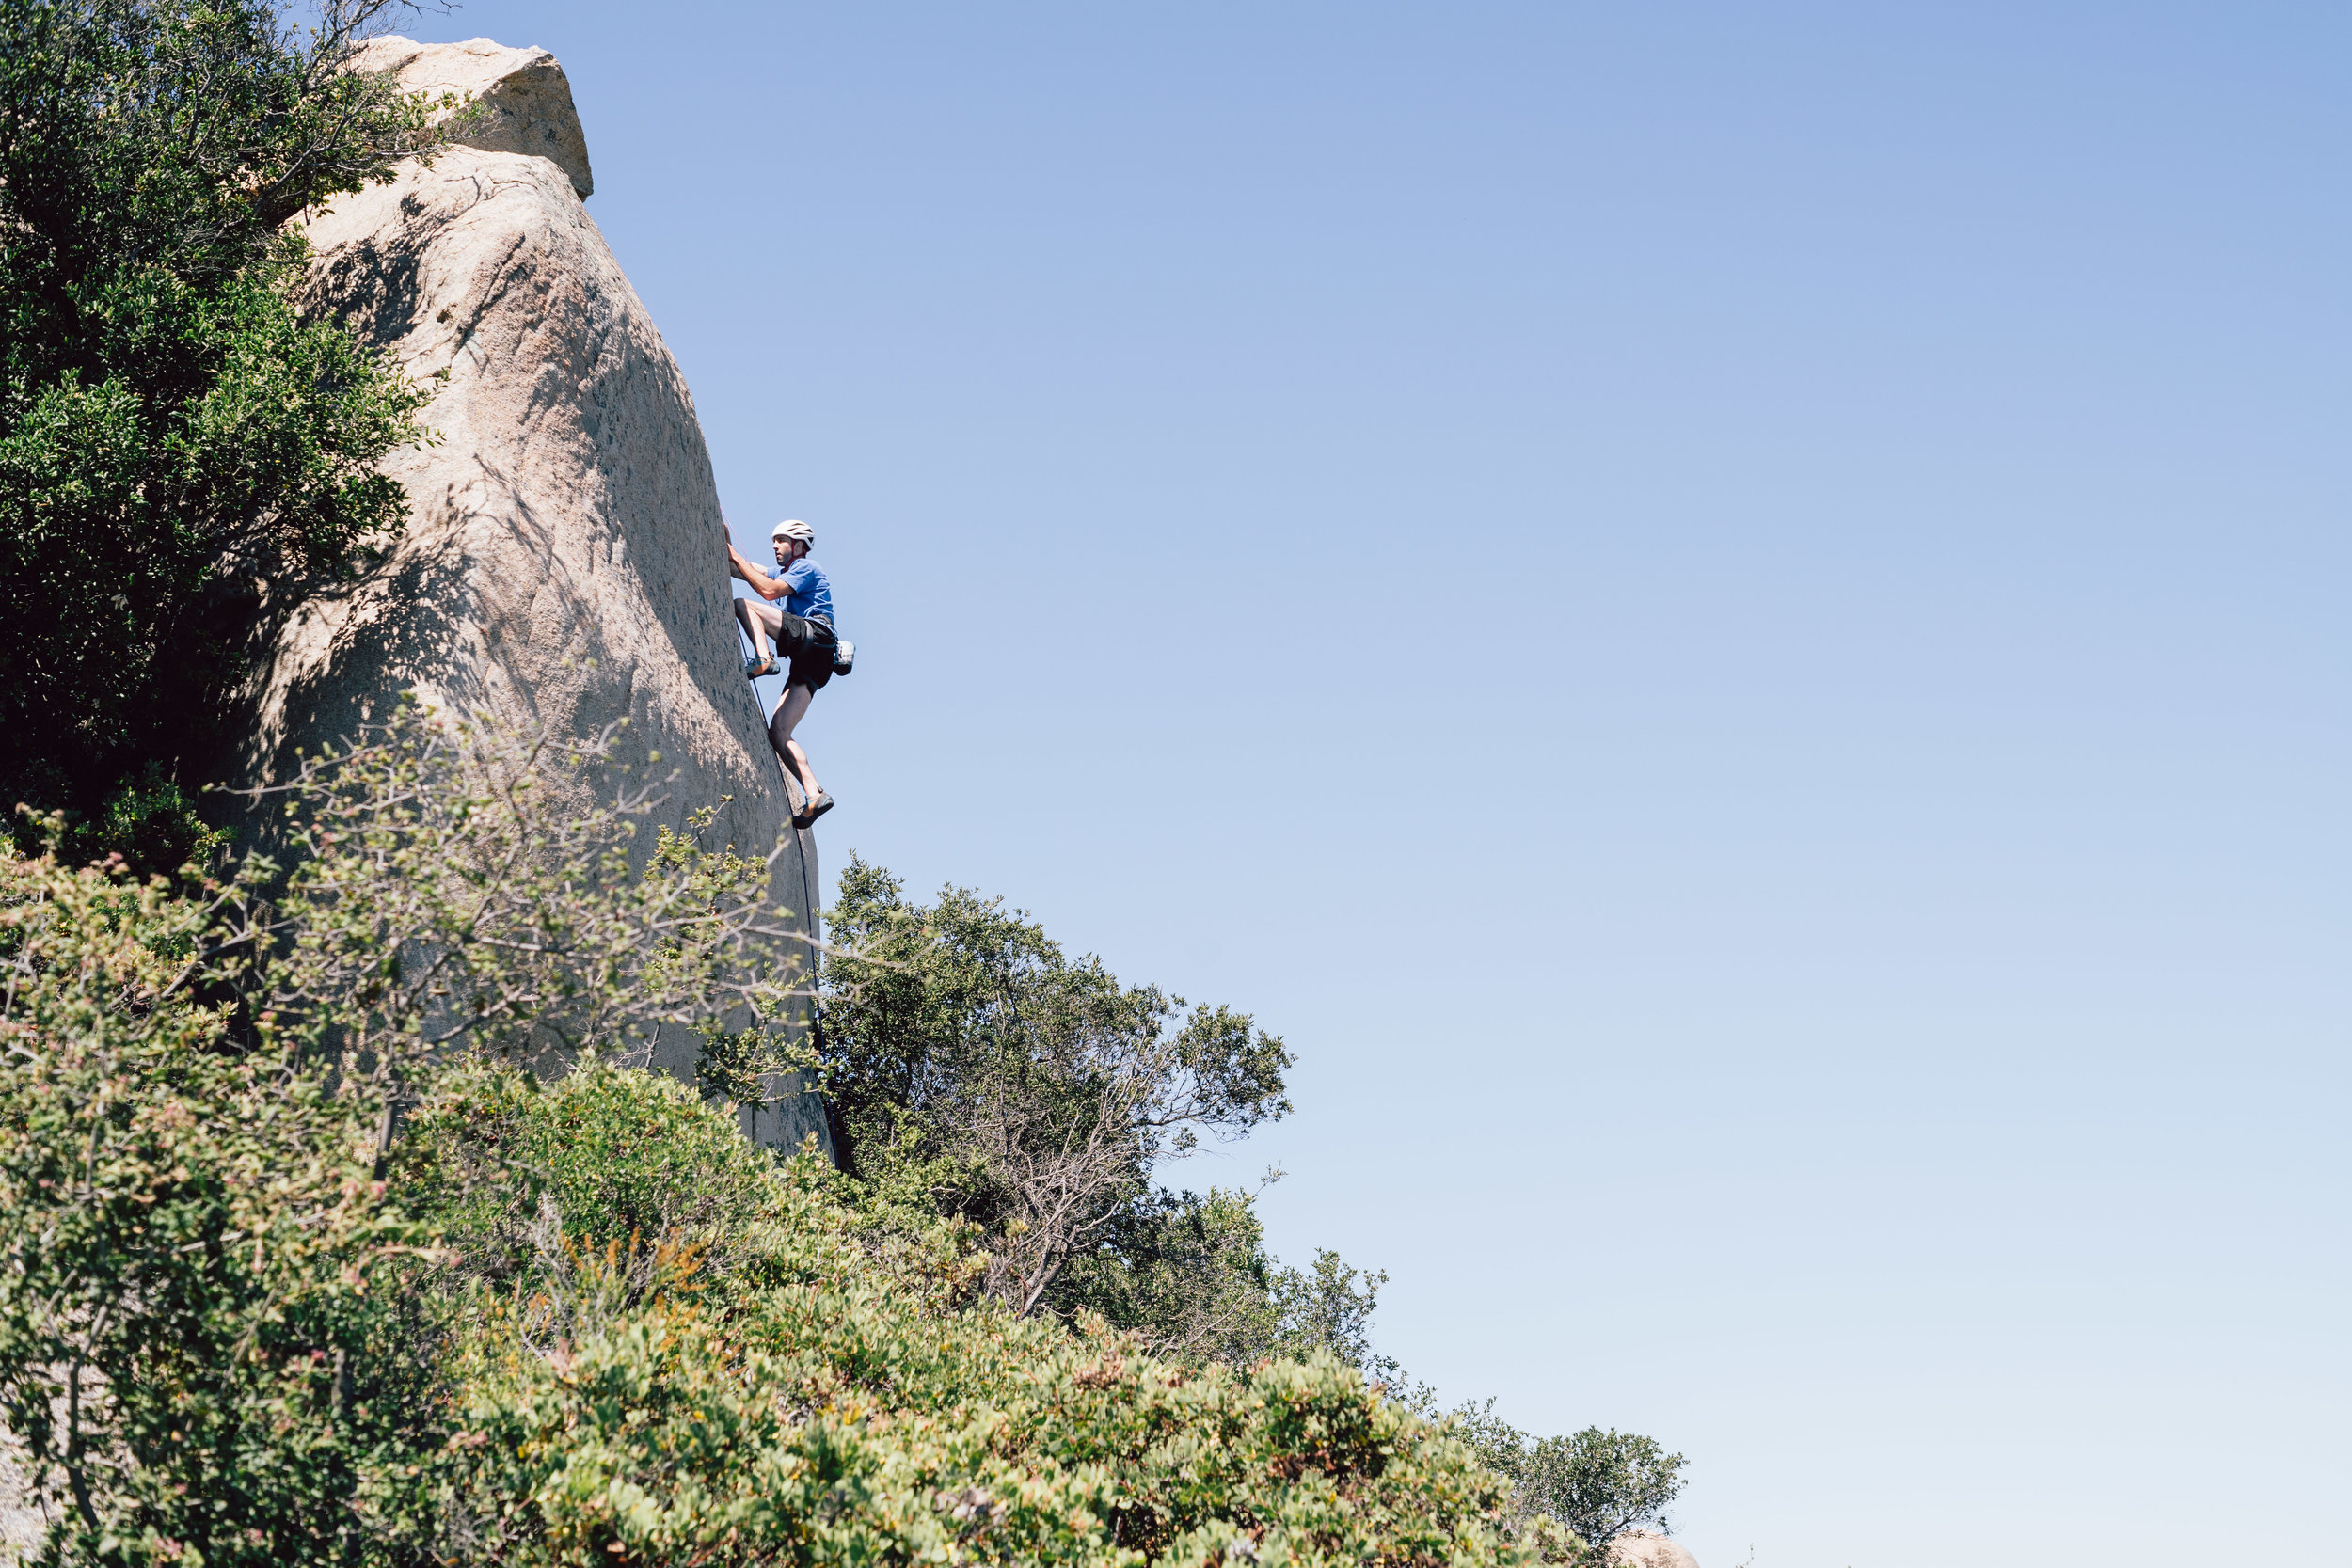 Golden State Guiding Mt. Woodson Rock Climbing Out of Sight